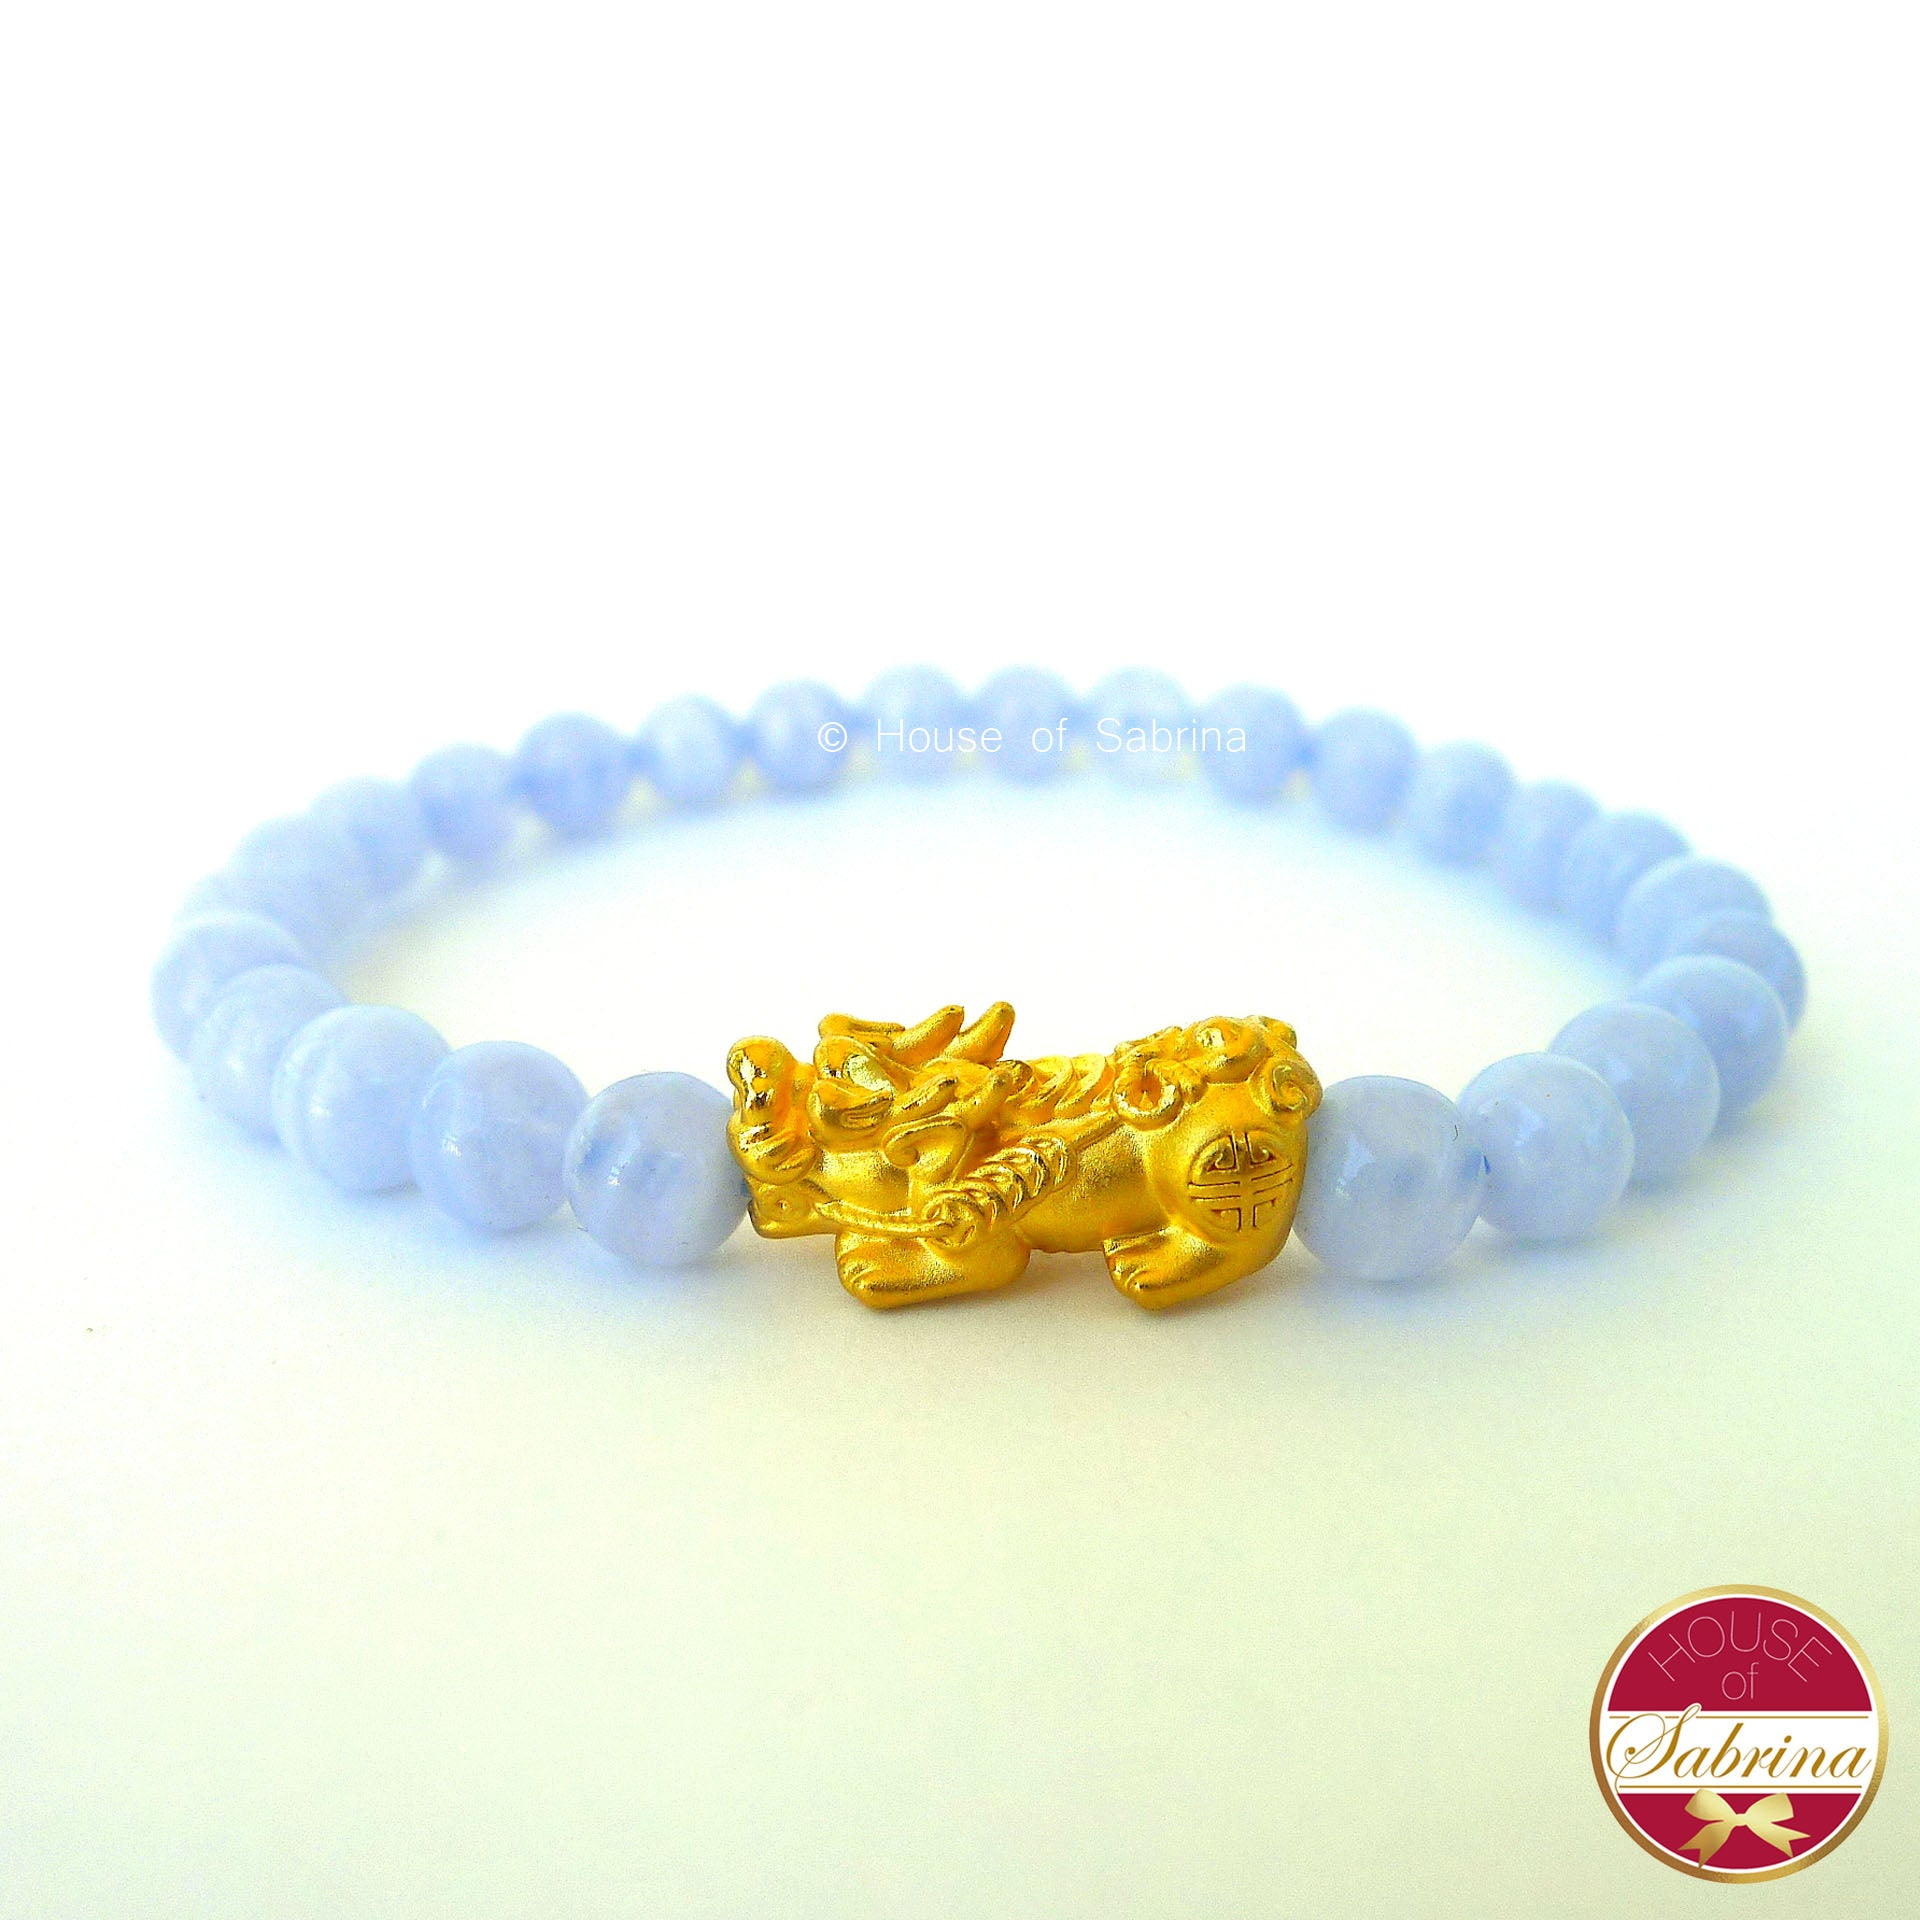 24K Gold Medium Pi Yao Charm in  Blue Lace Agate Bracelet